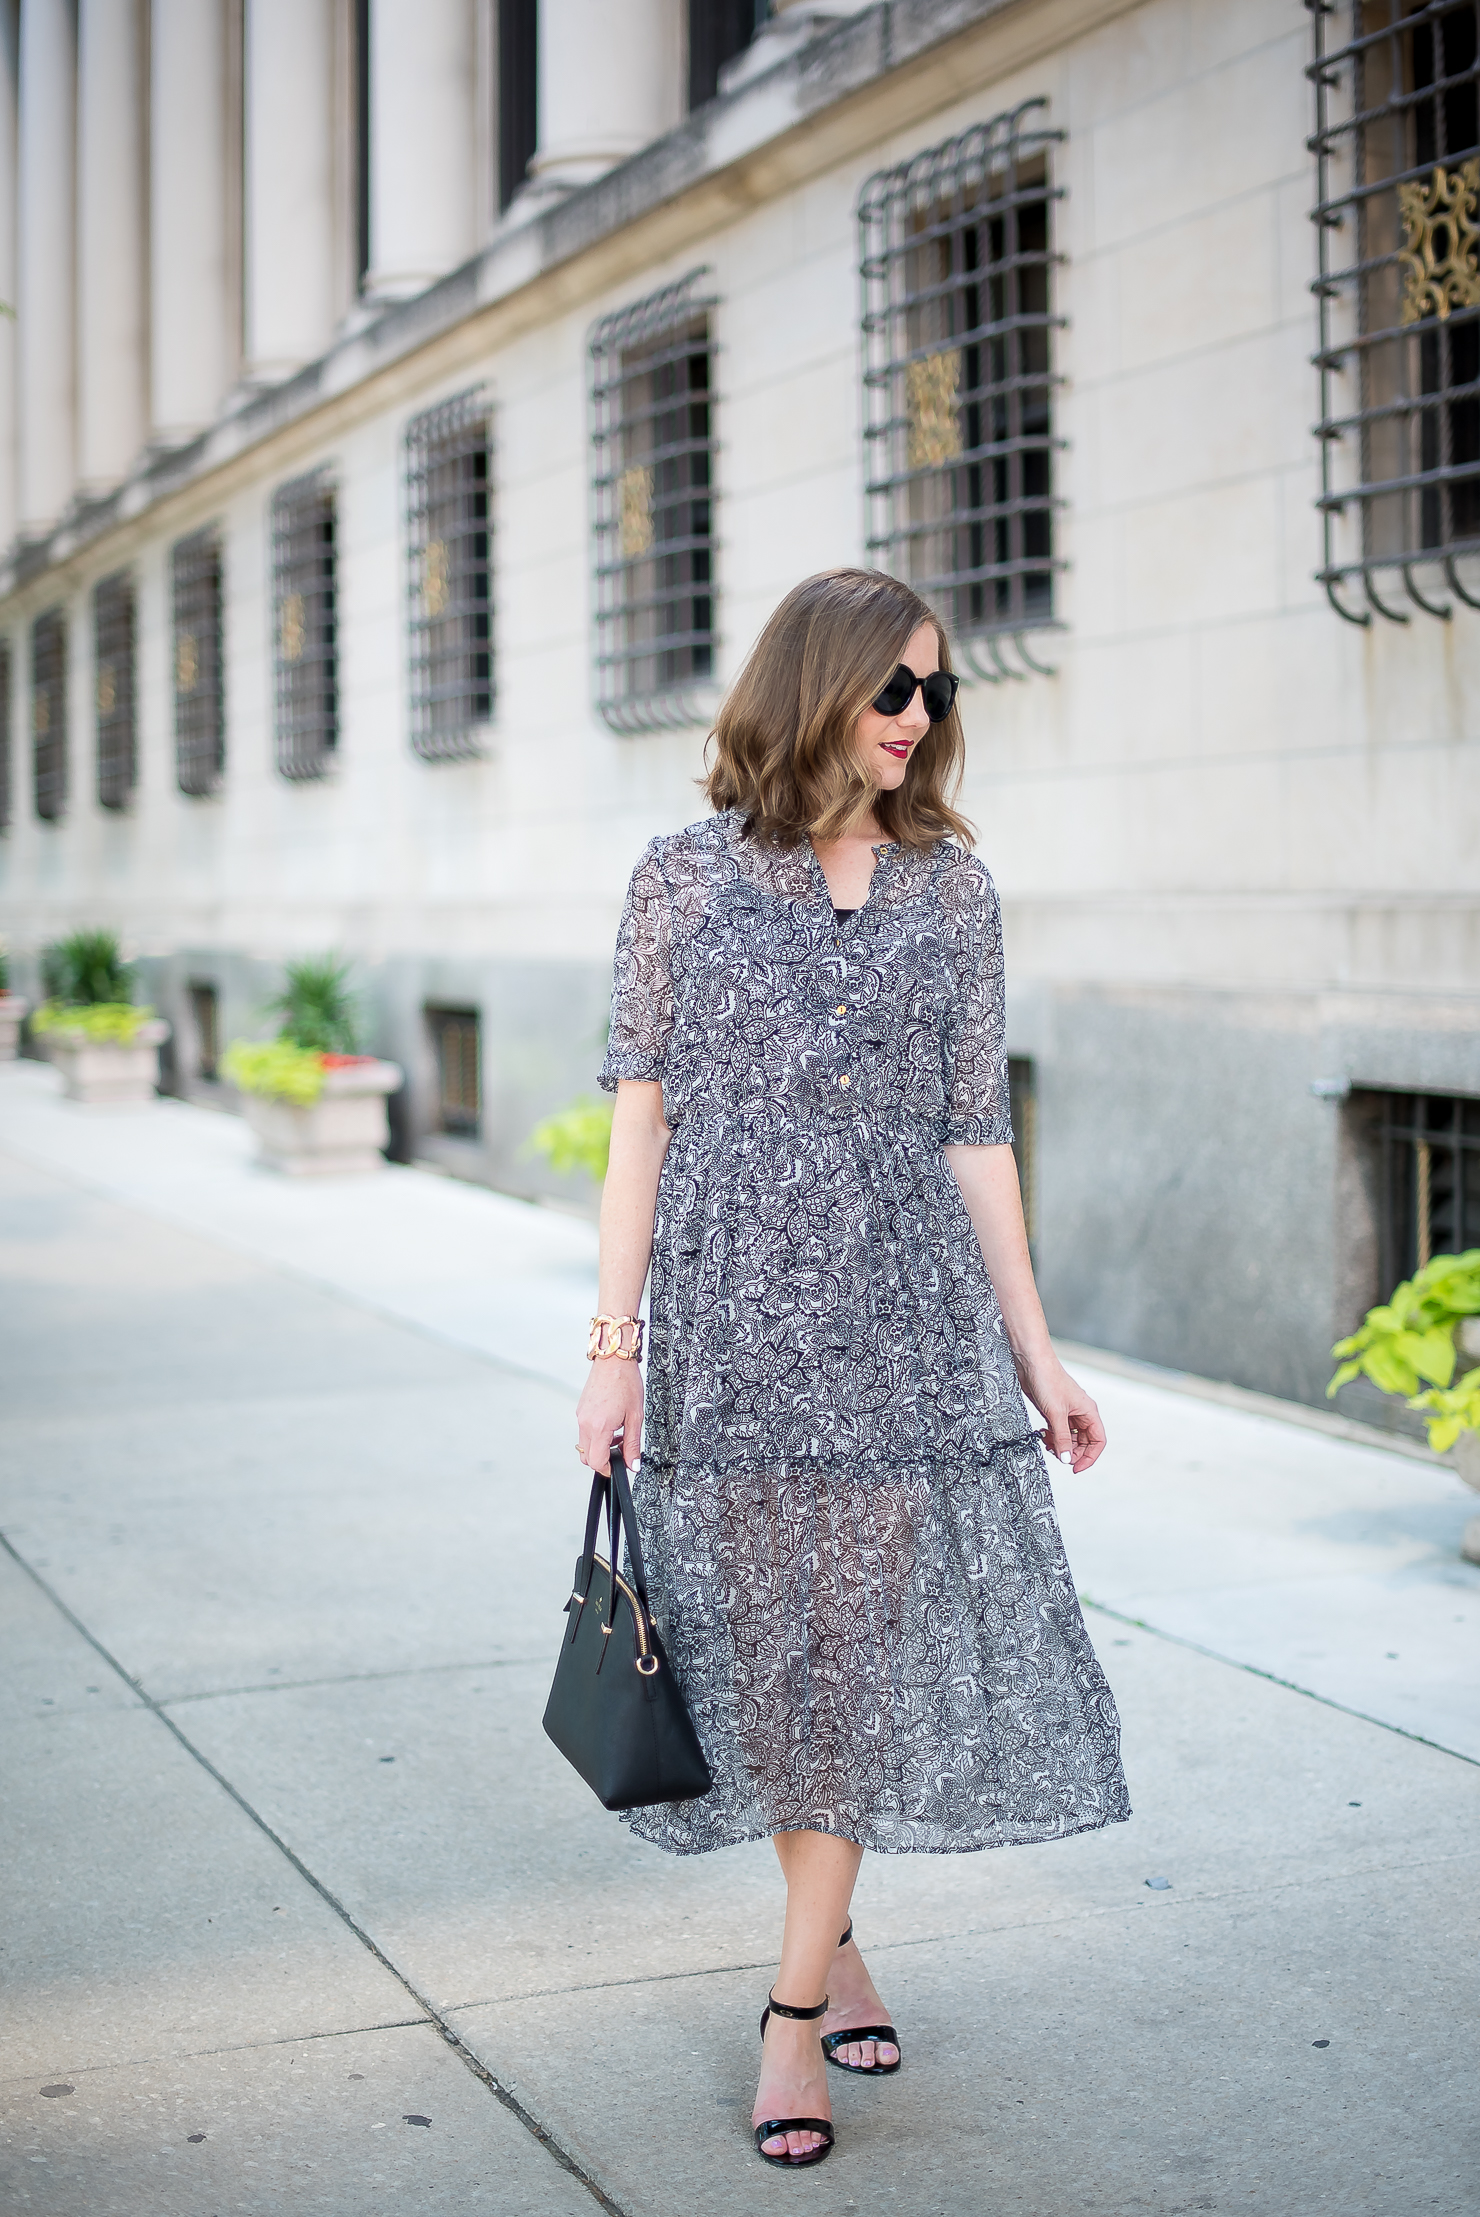 target-who-what-wear-printed-midi-dress-classic-feminine-ladylike-kate-spade-cedar-maise-gold-details-chicago-drake-hotel-3